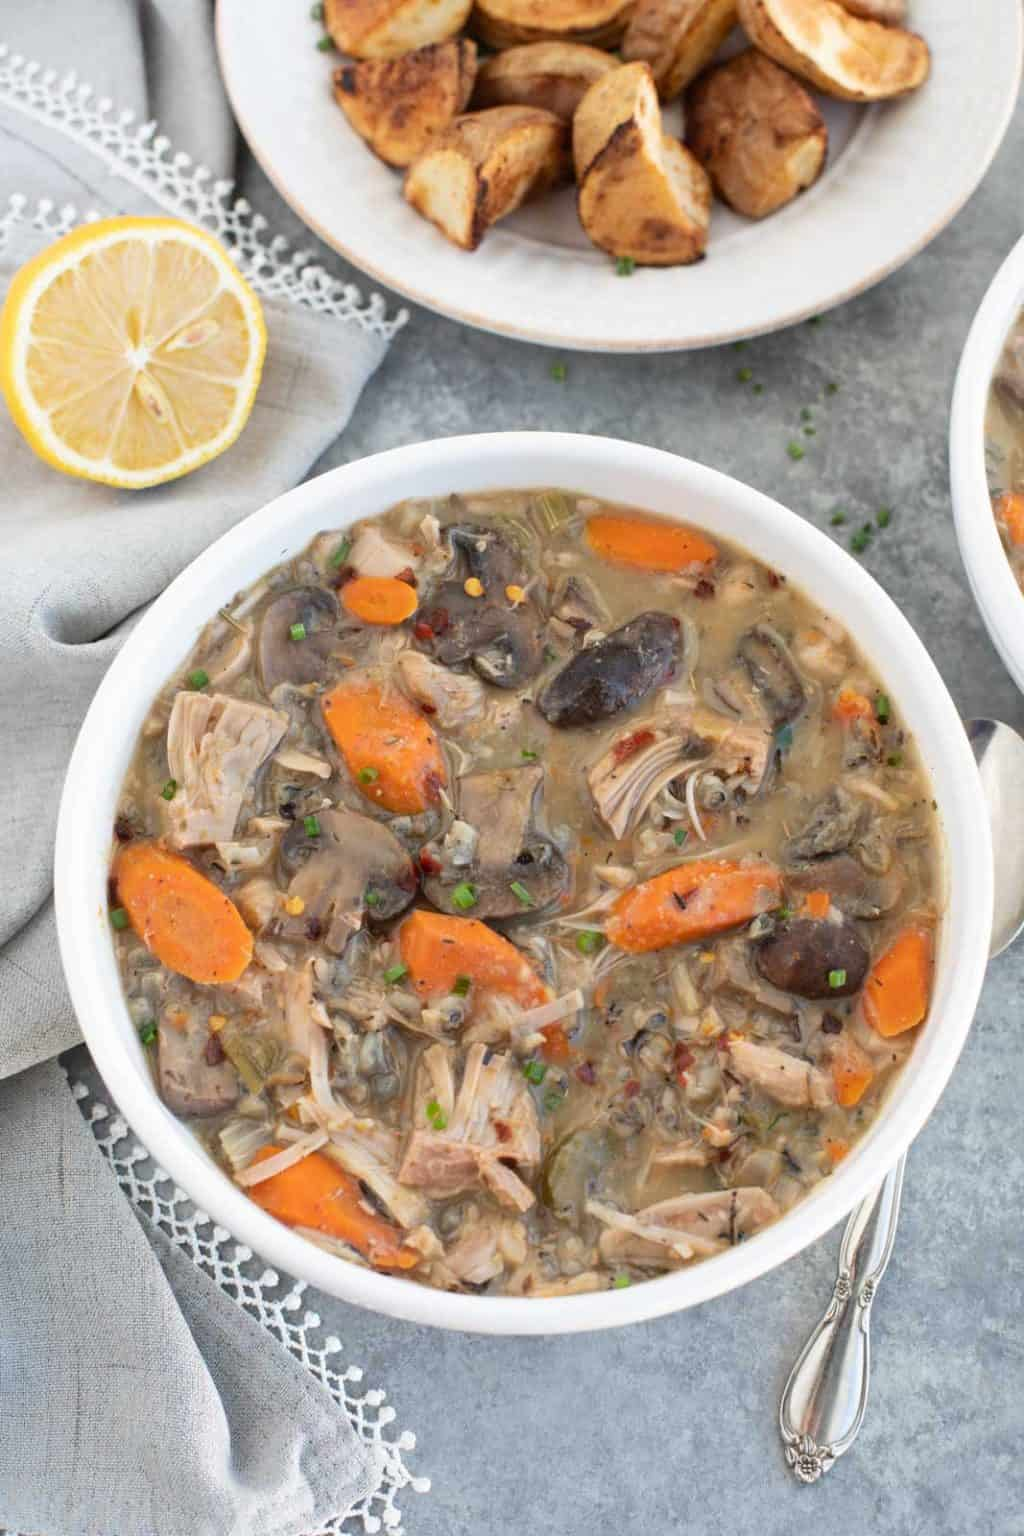 Slow cooker vegan chicken wild rice soup